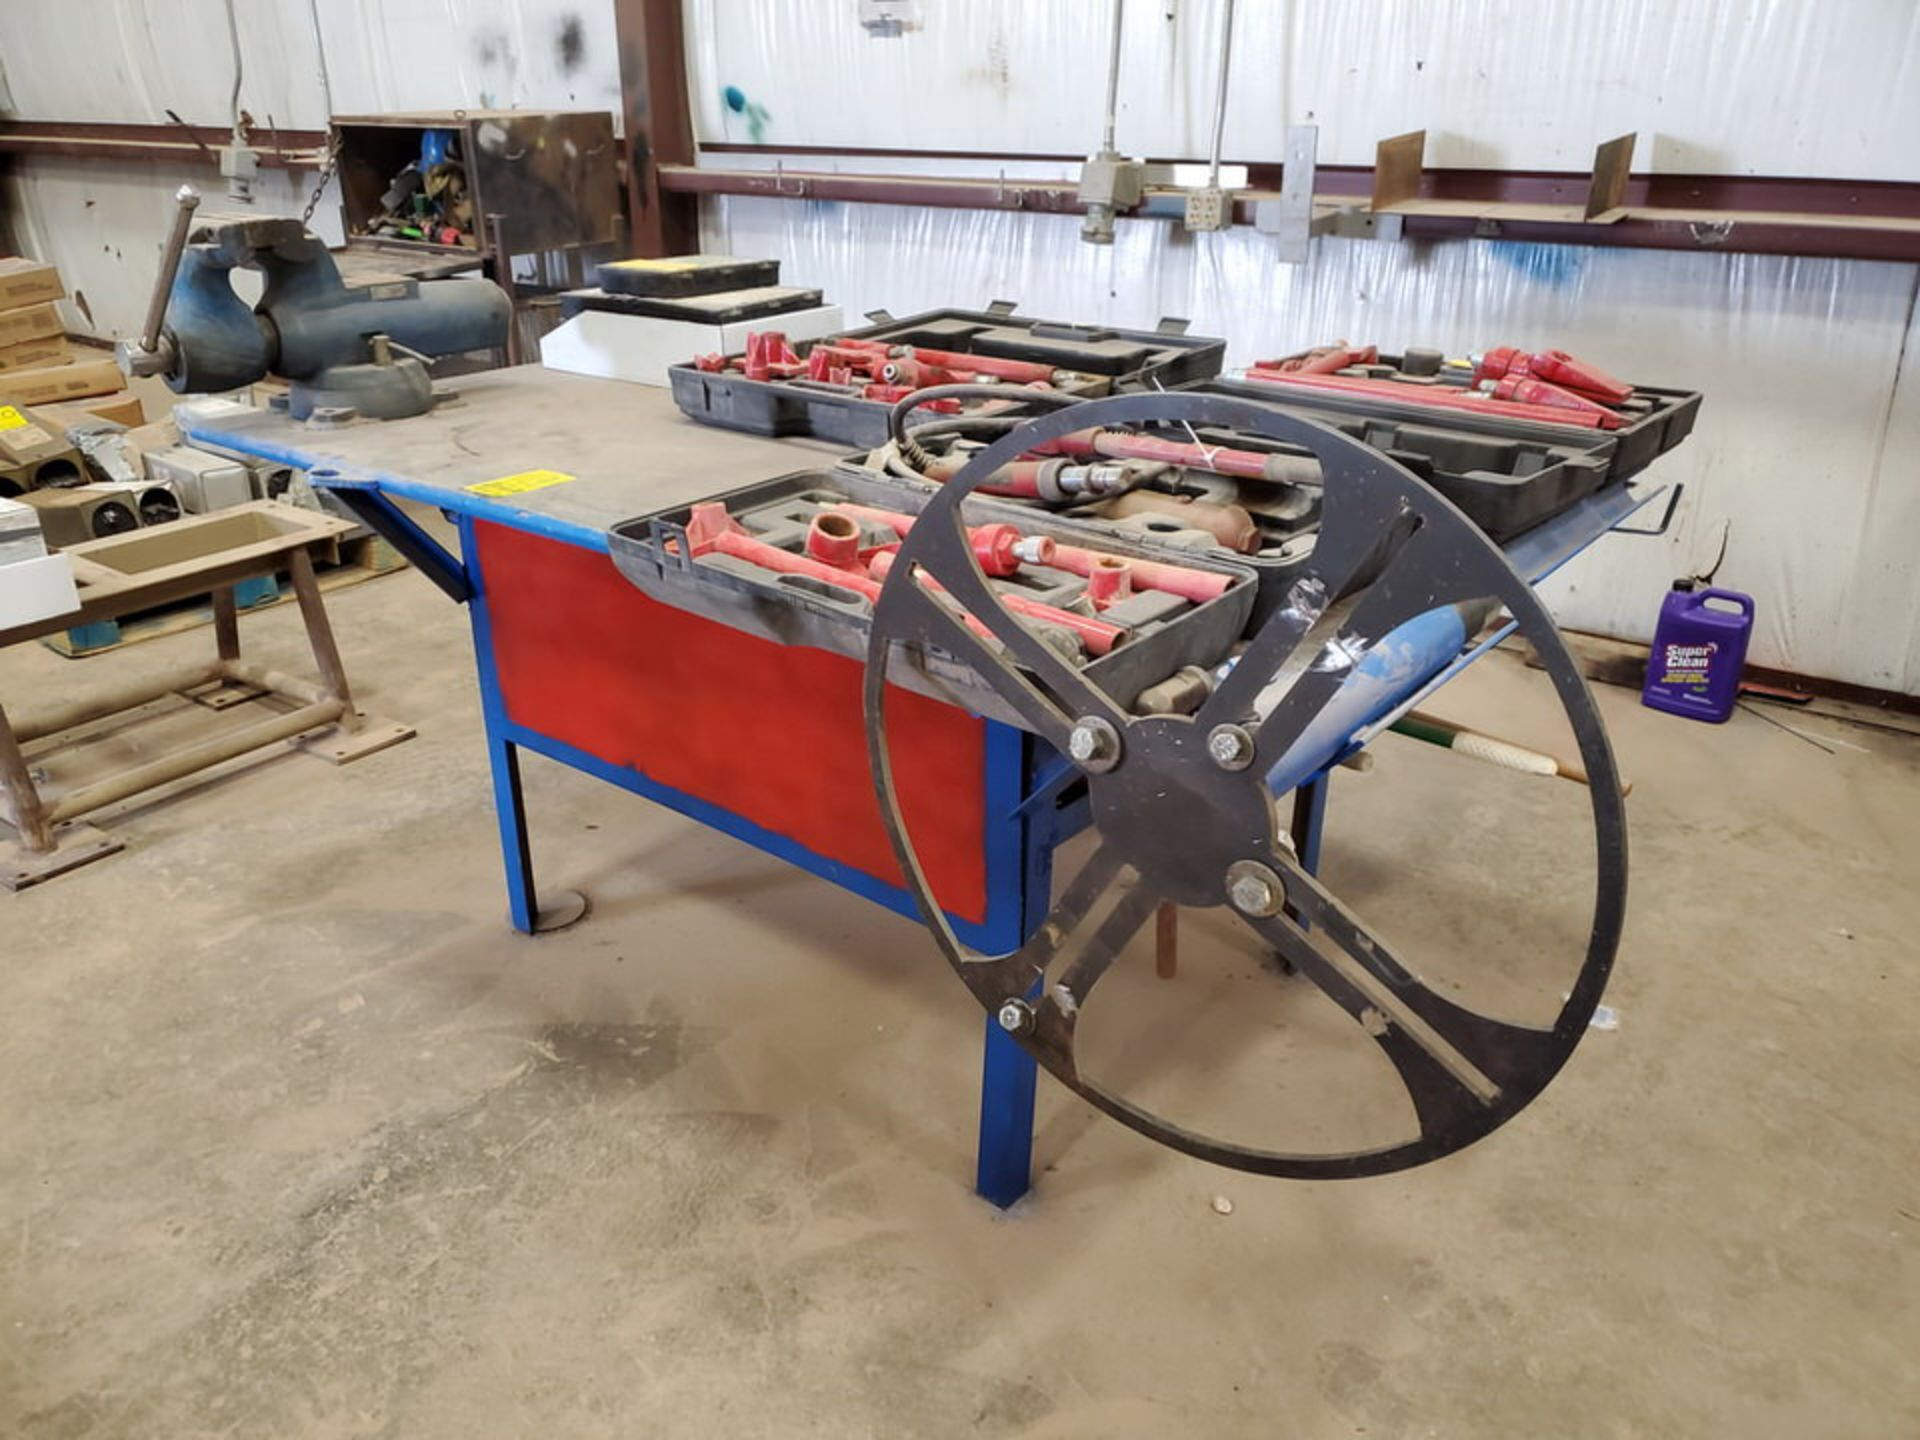 "Stl Welding Table W/ 6"" Vise 48"" x 70"" x 35""H (Material Excluded) - Image 3 of 8"